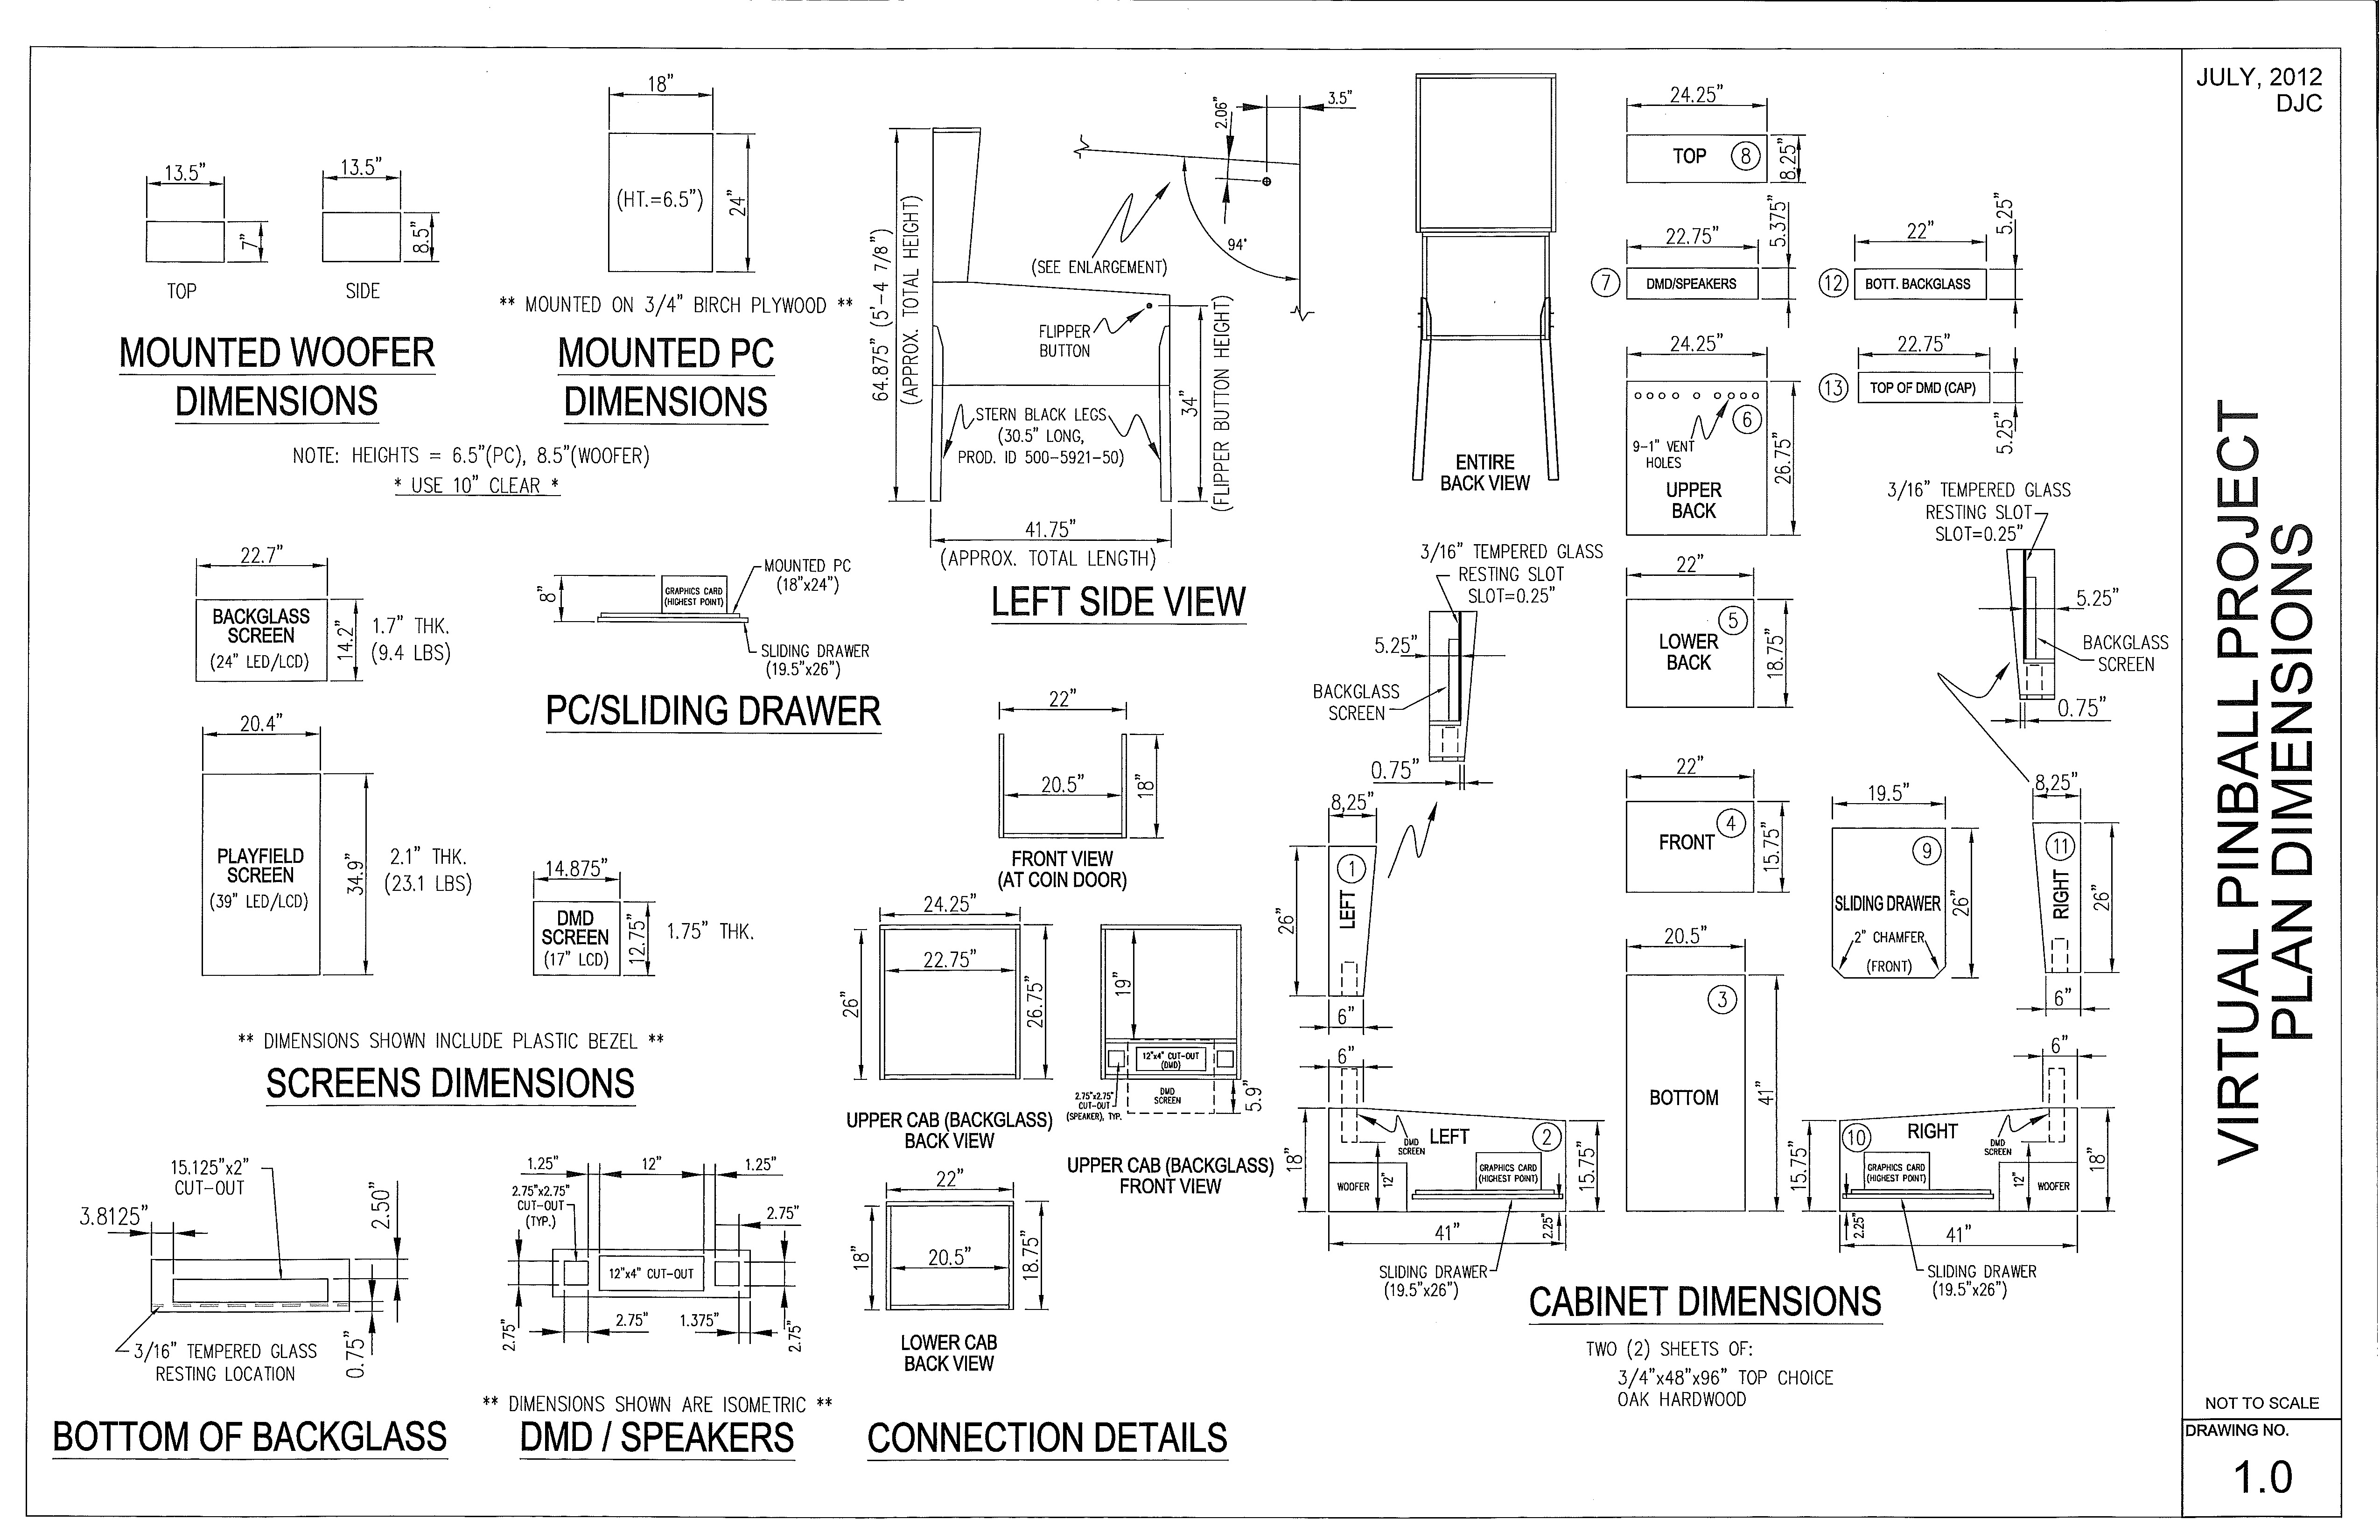 September 2012 markwheeler for Build kitchen cabinets plans